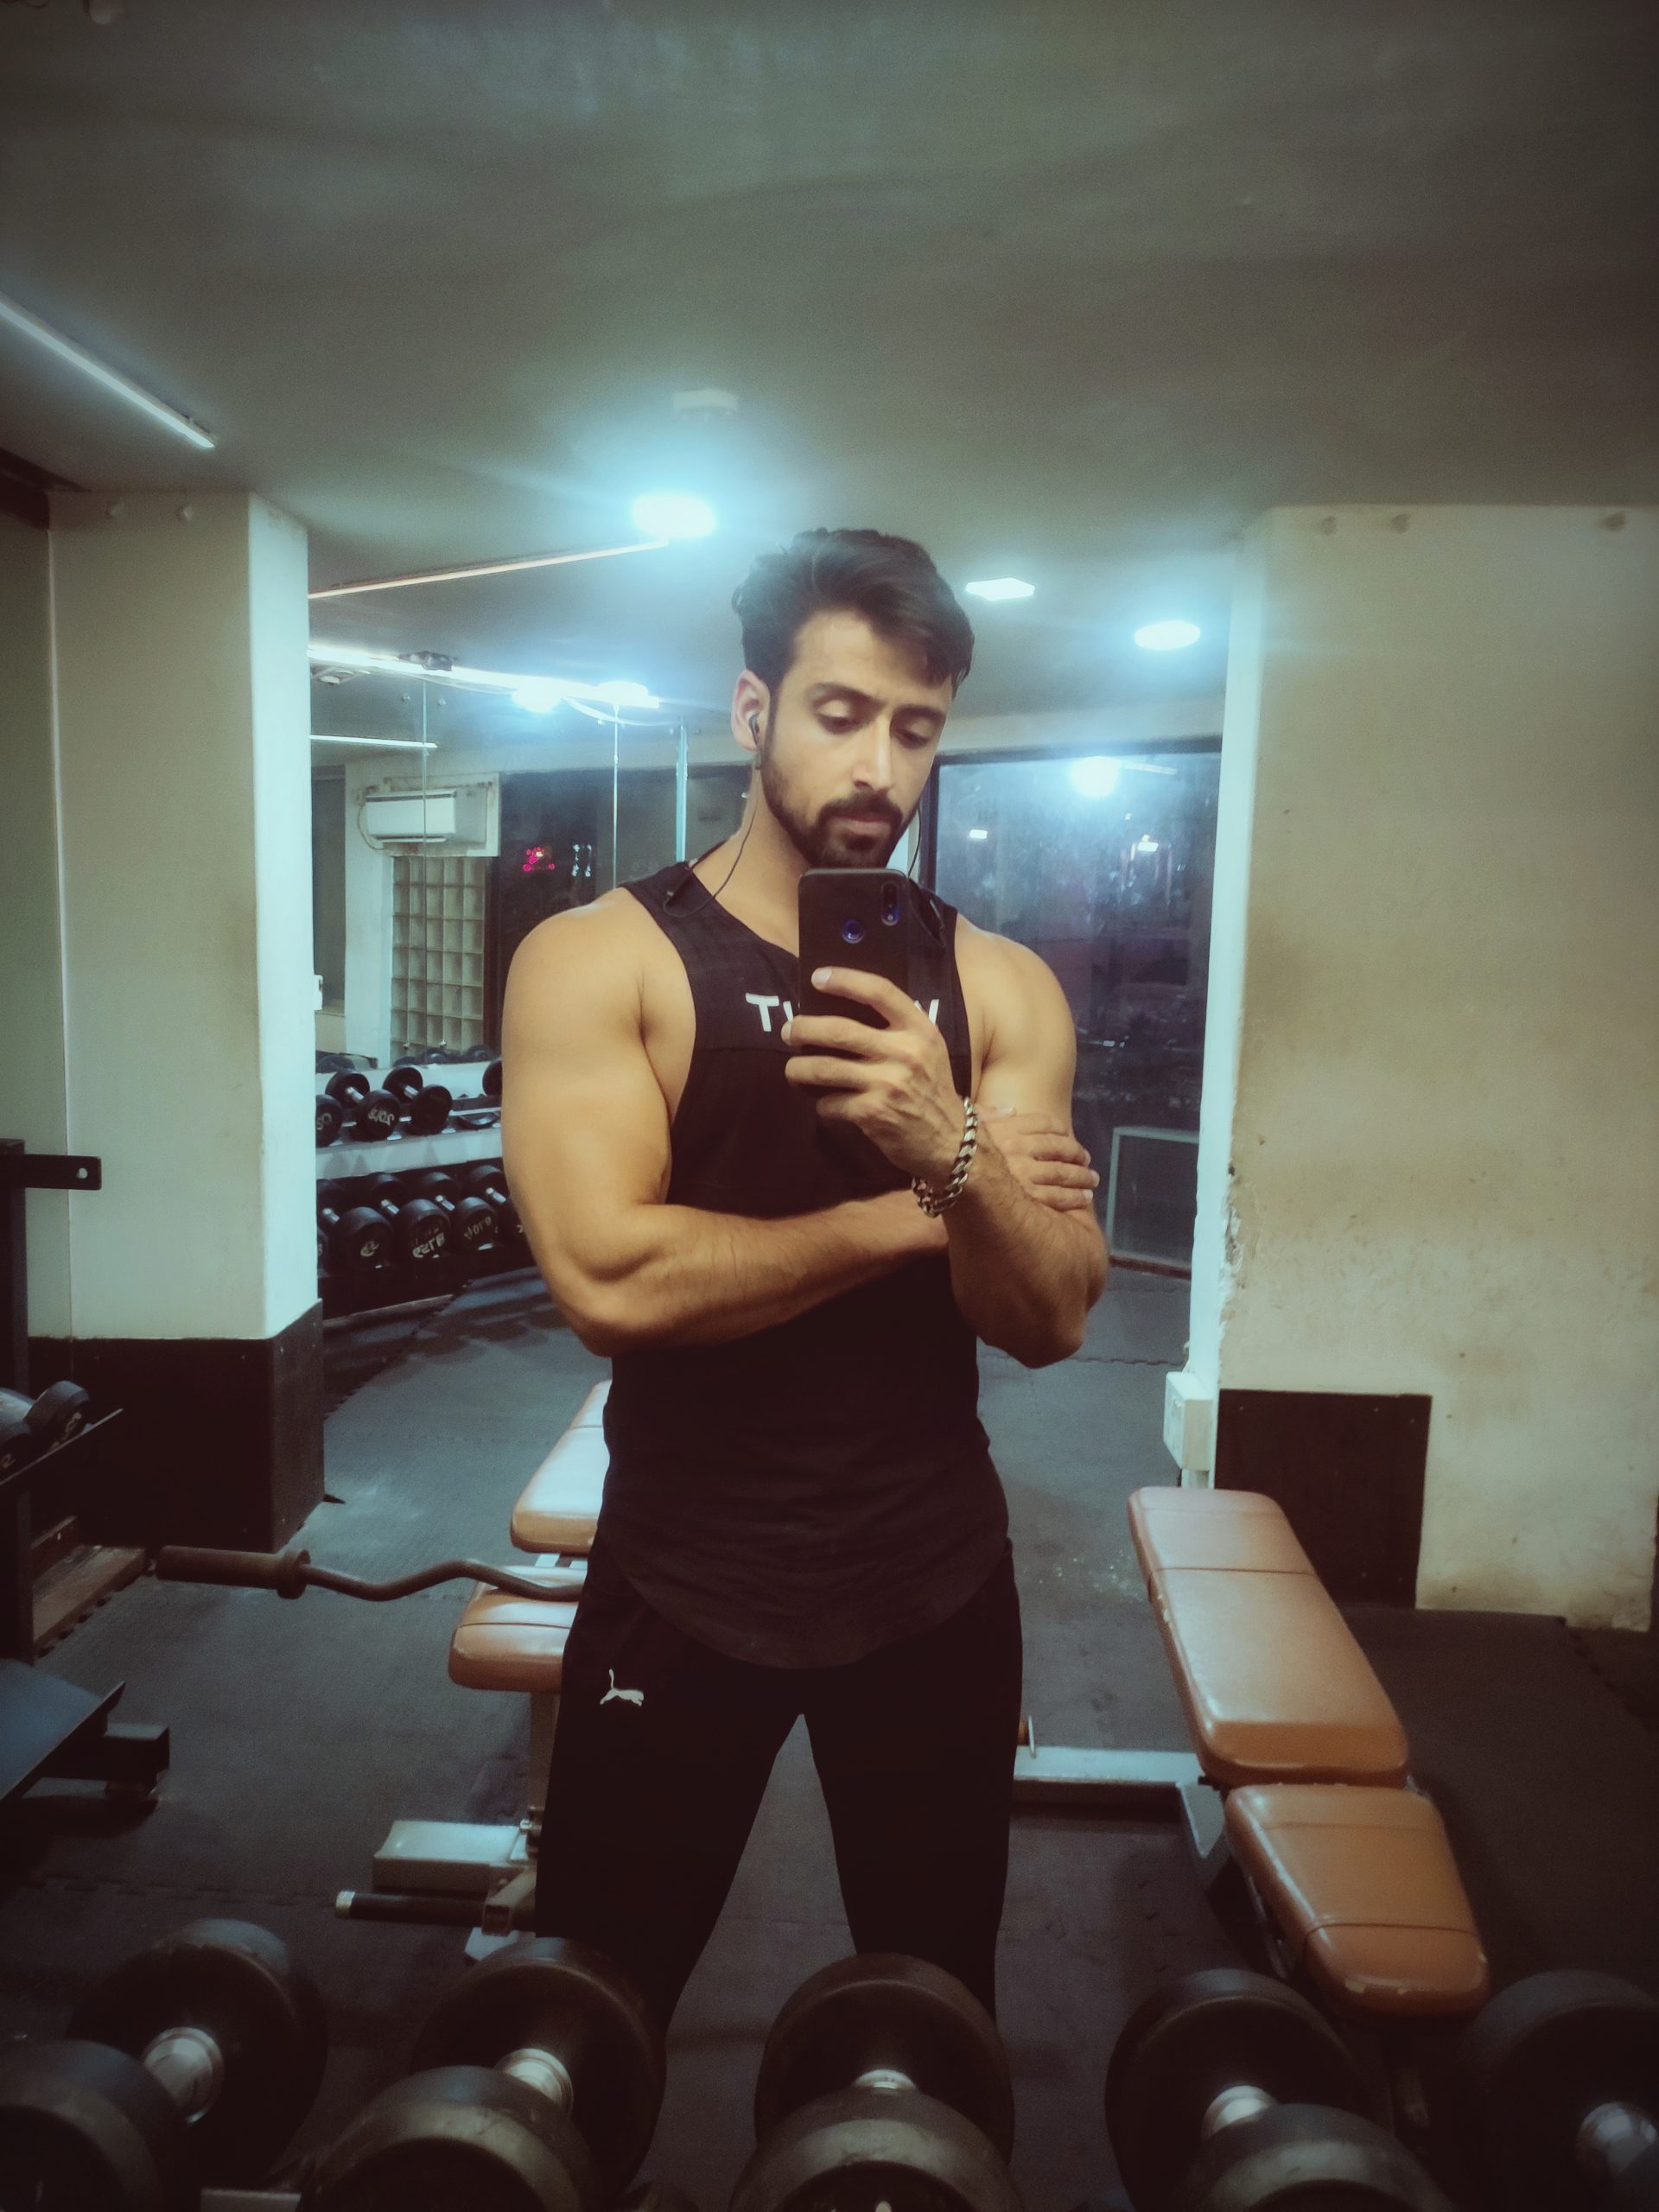 Boy clicking selfie in the Gym